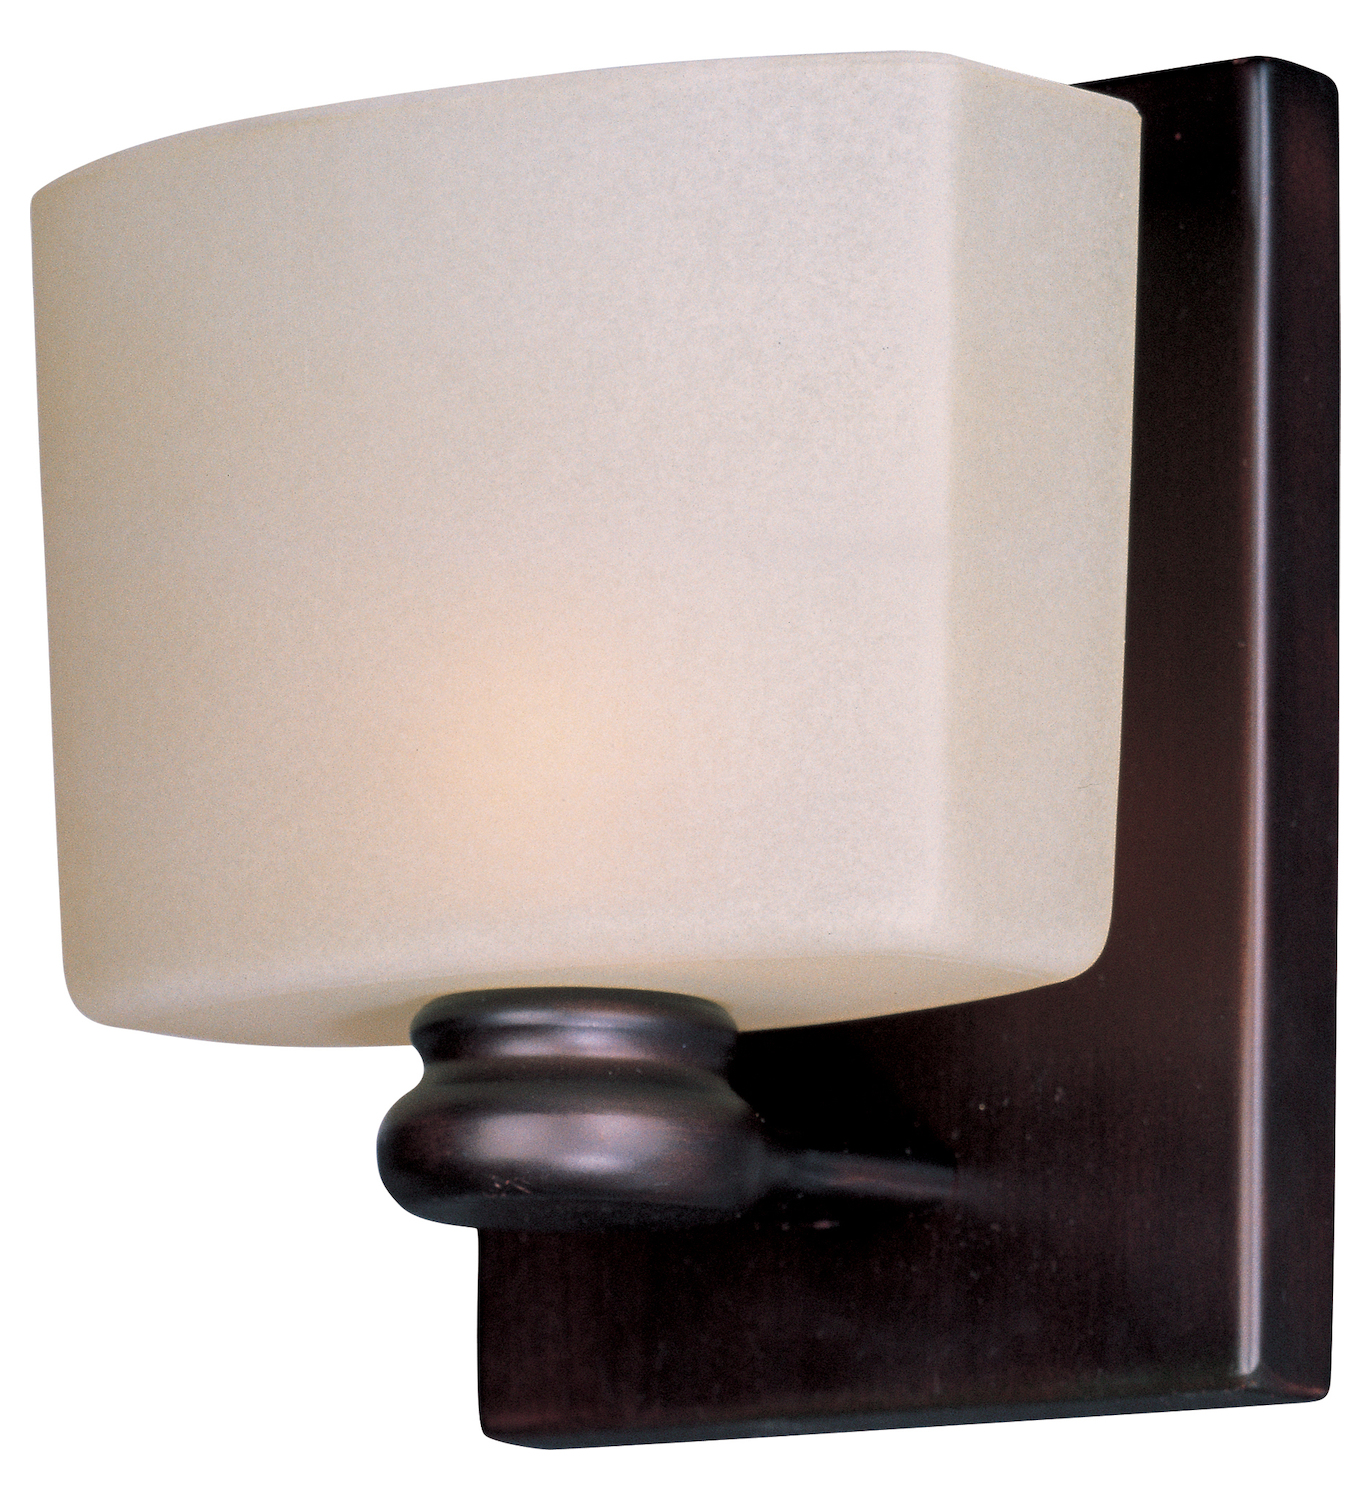 Maxim one light oil rubbed bronze dusty white glass bathroom sconce oil rubbed bronze 9001dwoi for Bathroom wall sconces oil rubbed bronze